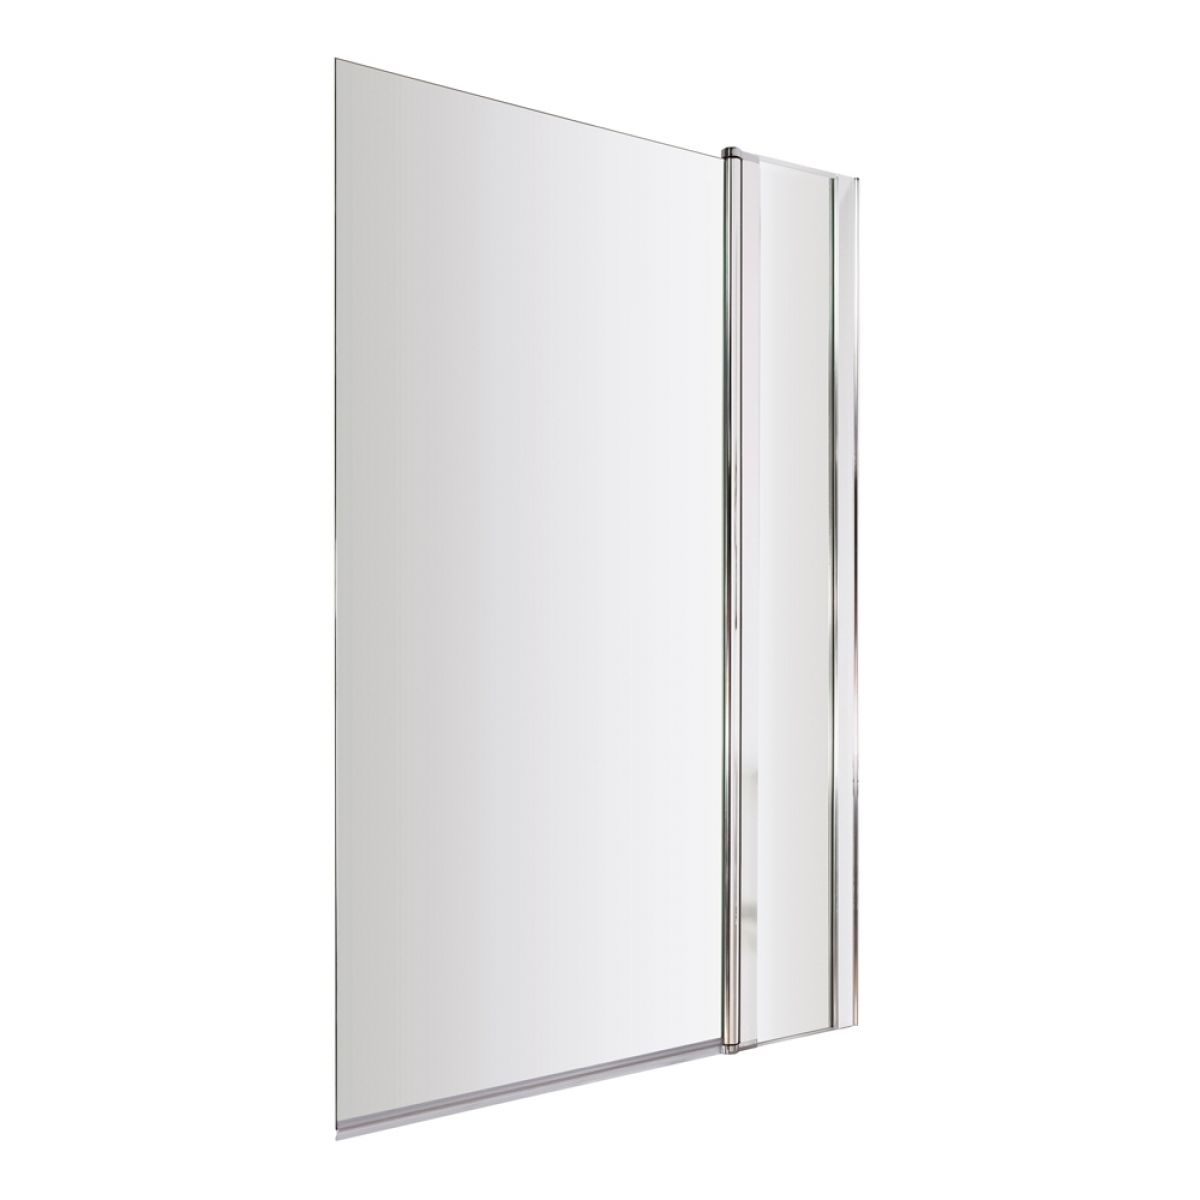 Premier Straight Square Edge Bath Screen with Fixed Panel